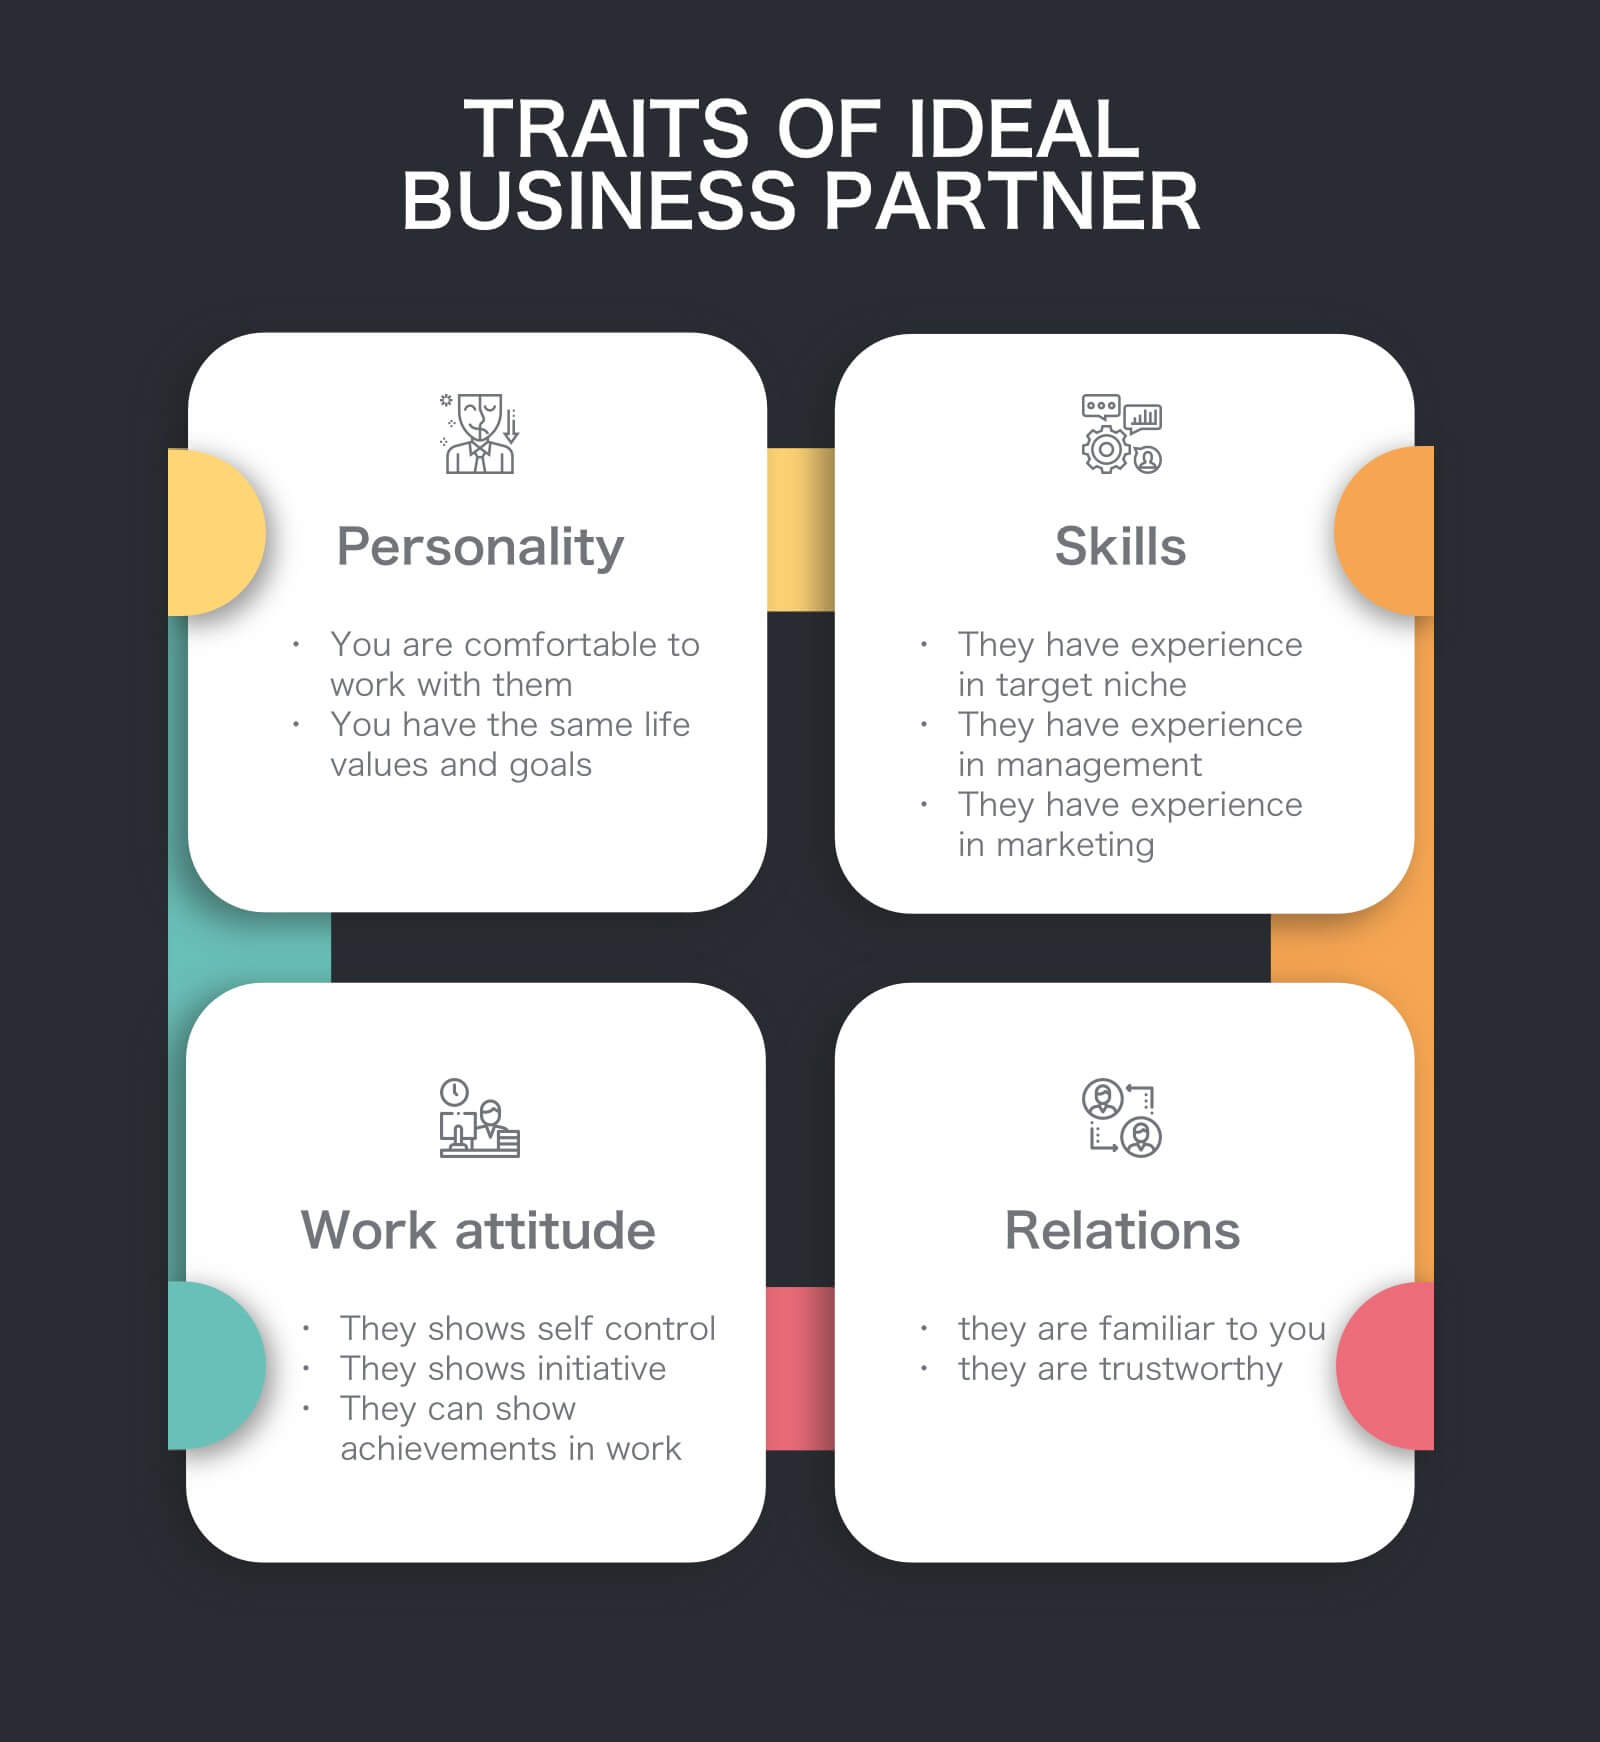 traits of ideal business partner